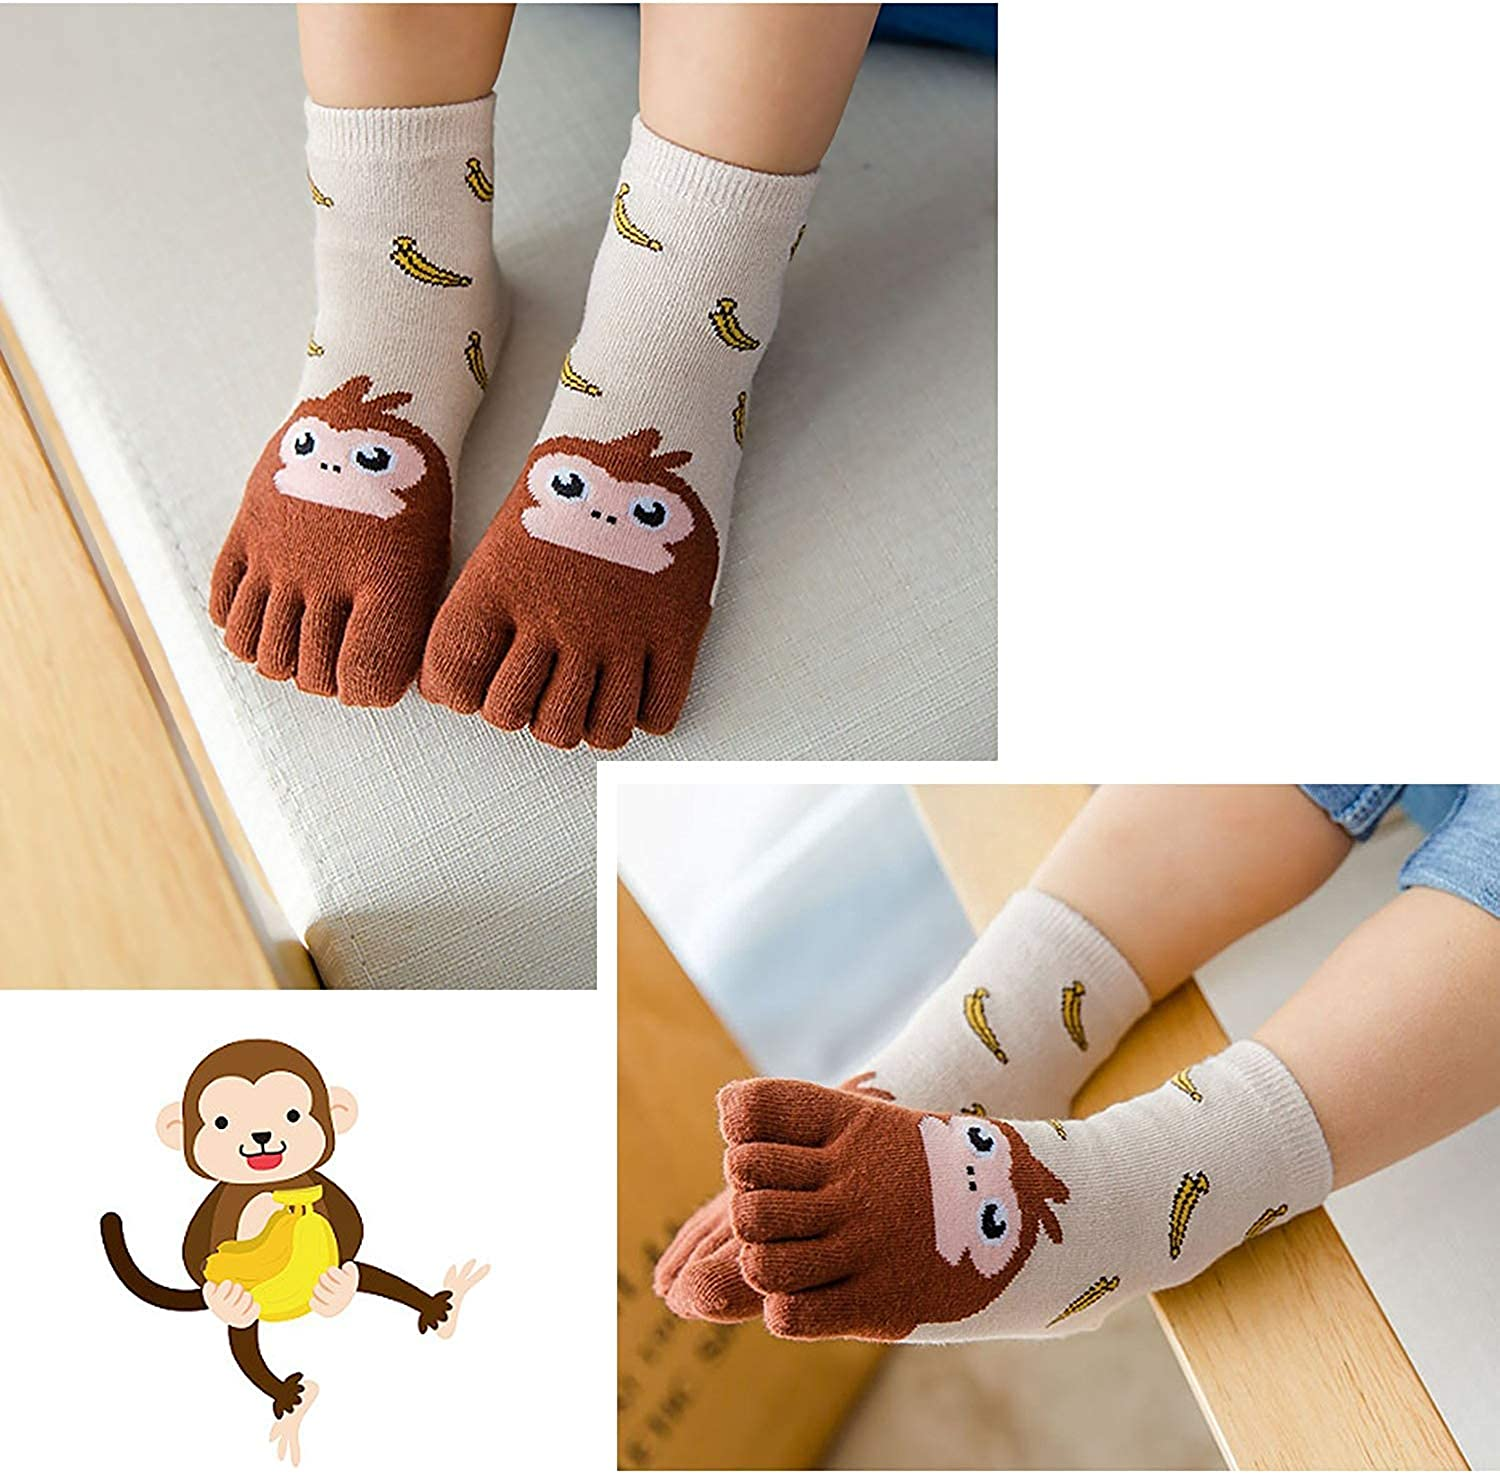 Kids Cute Animal Pattern Novelty Crew Socks Toddler Girls Boys Christmas Socks 4 pairs Kids Toe Socks Cotton Five Finger Socks 3-12 Years